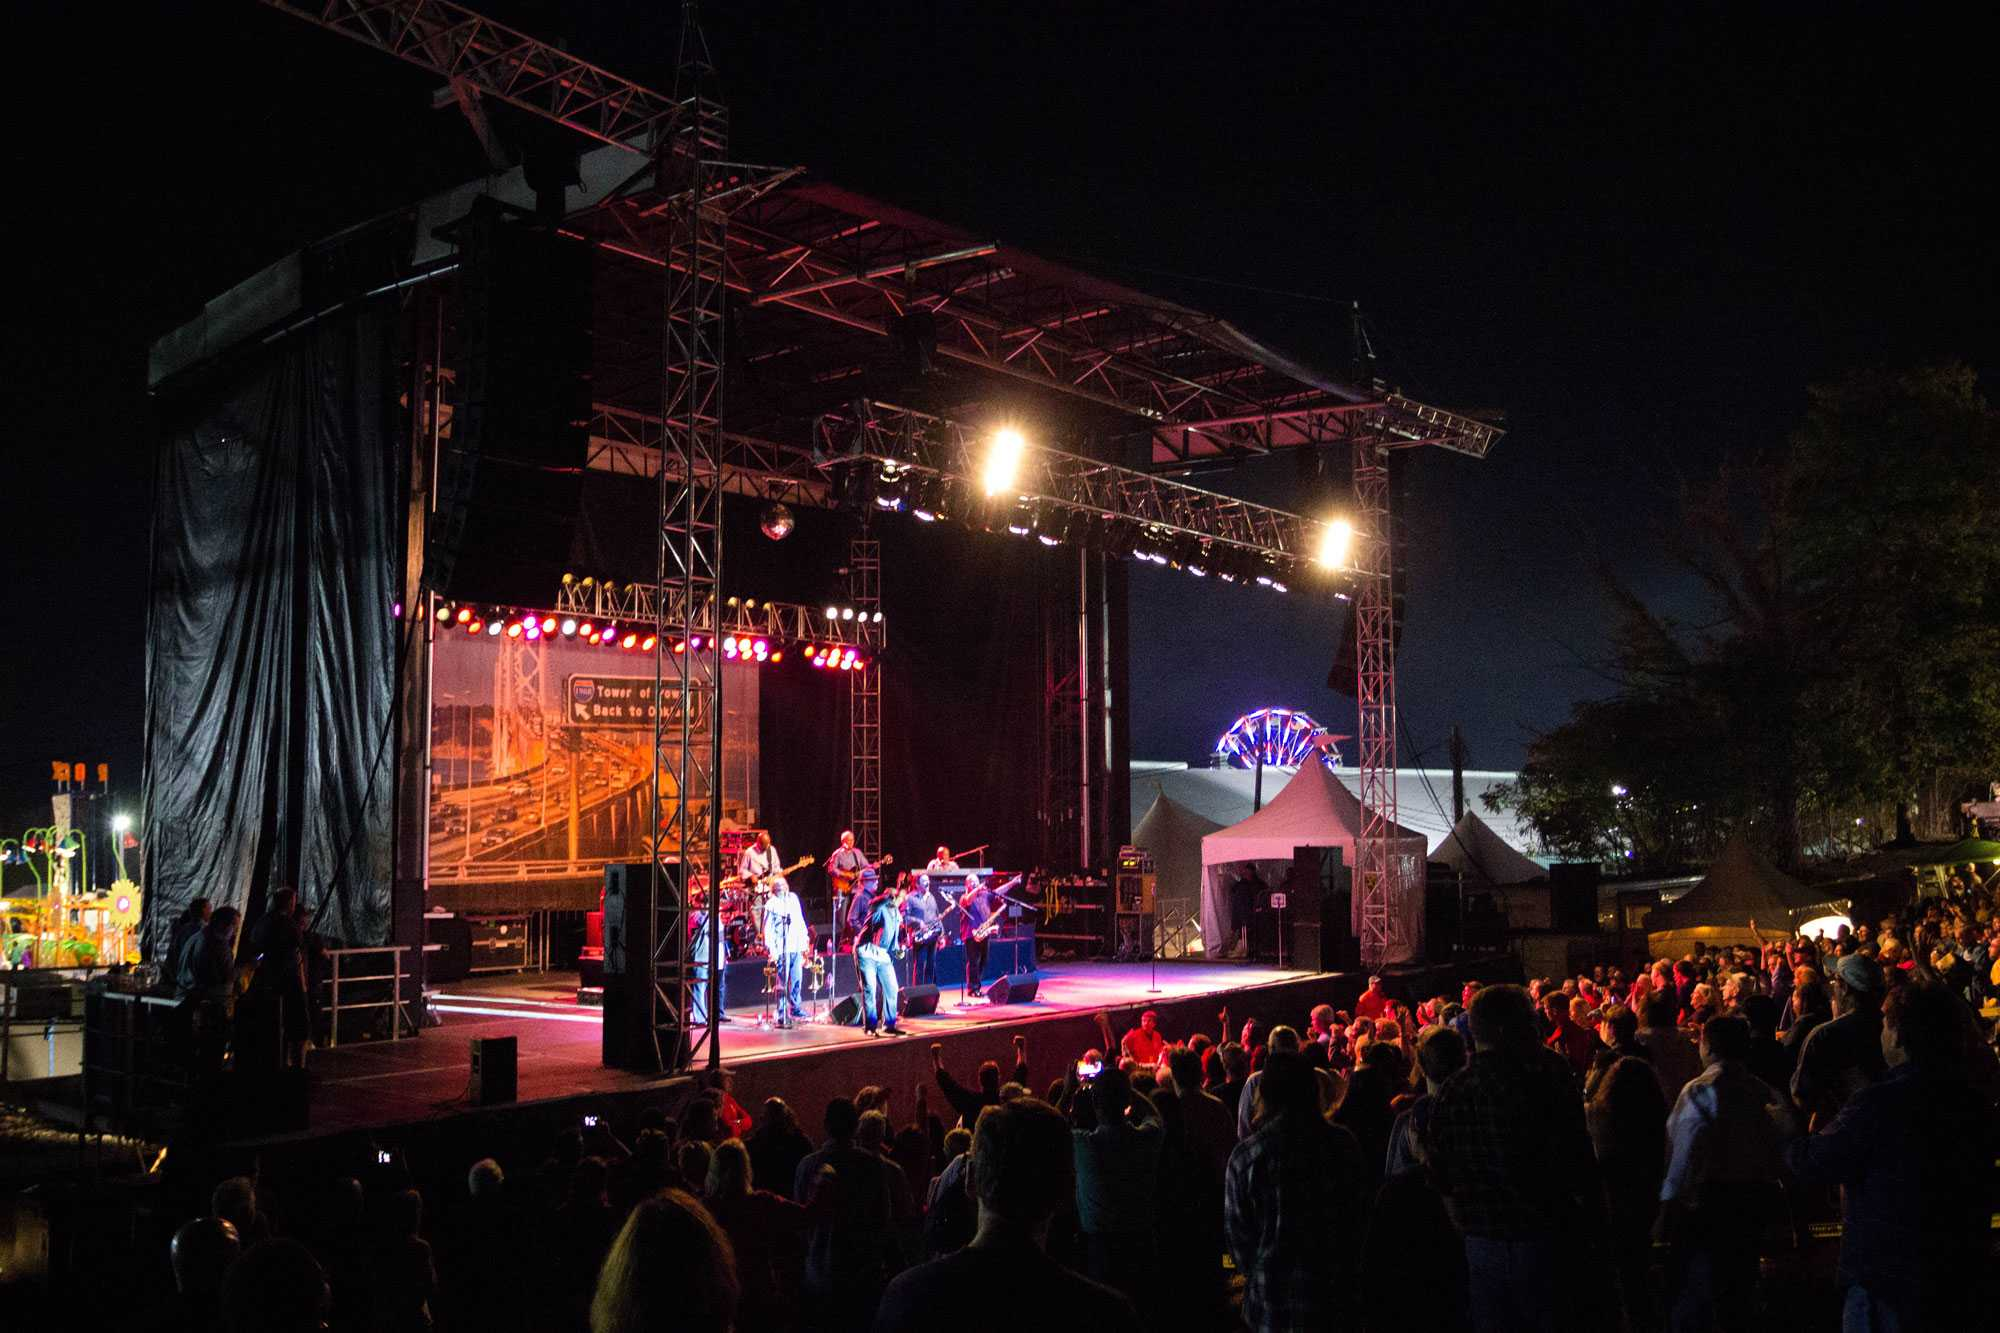 """Tower of Power rounds up their set with one of their older tracks, """"What is Hip"""" from their album """"Live And In Living Color"""" released in 1976.  Tower of Power will continue on their 2014 tour across the nation and Europe through November and December."""